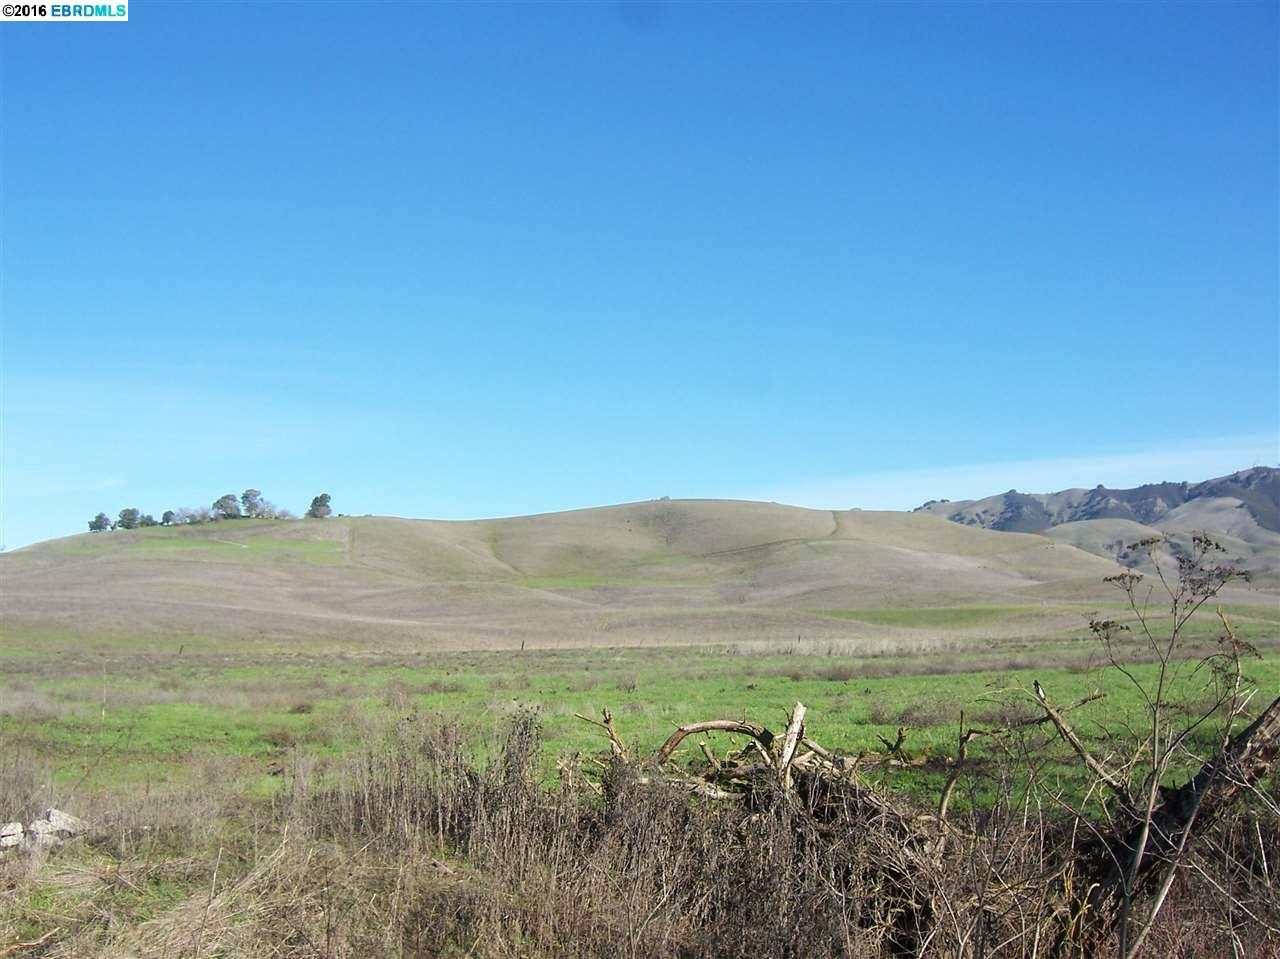 Land for Sale at 6351 JOHNSTON ROAD 6351 JOHNSTON ROAD Danville, California 94588 United States